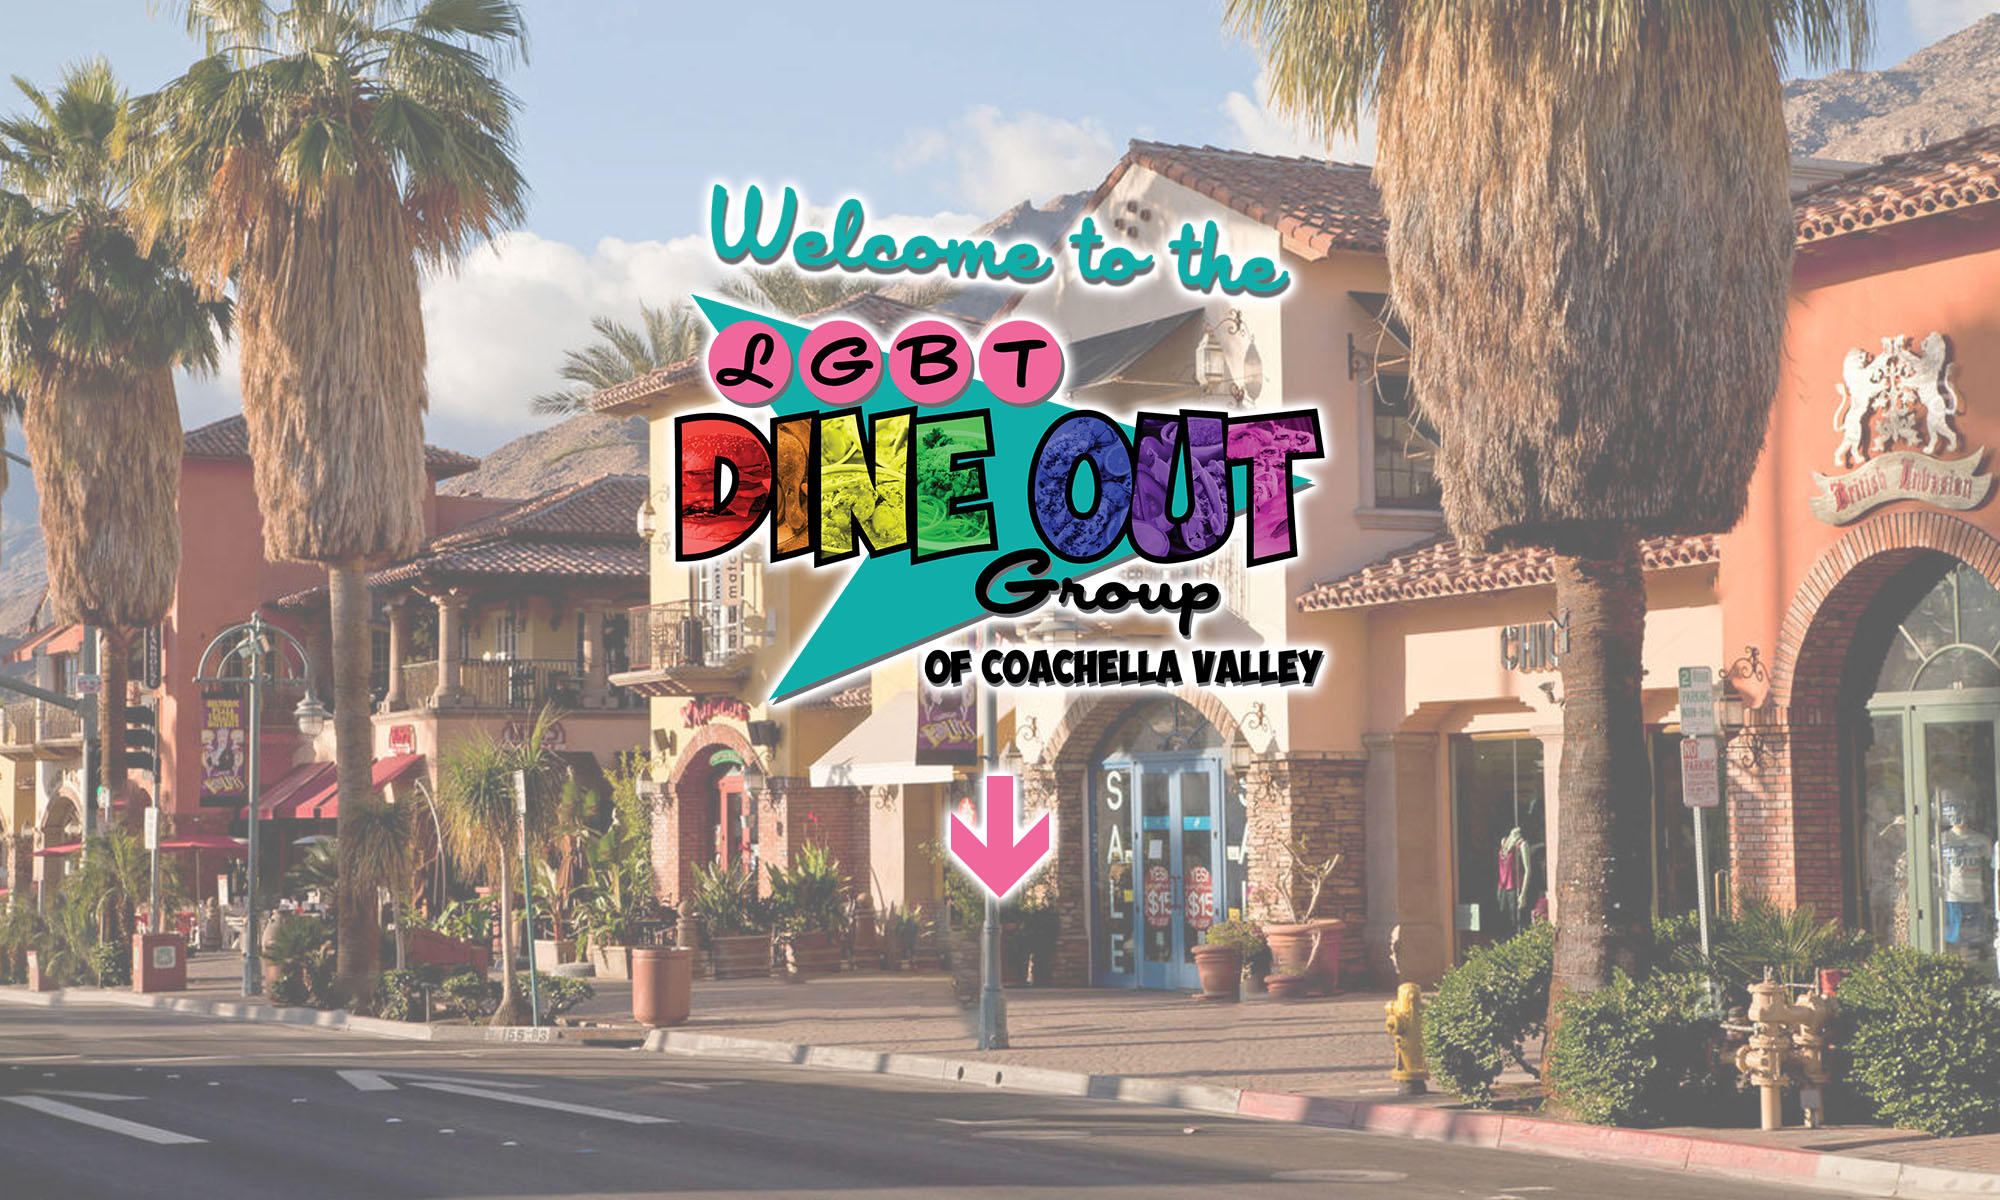 LGBT Dine Out Group